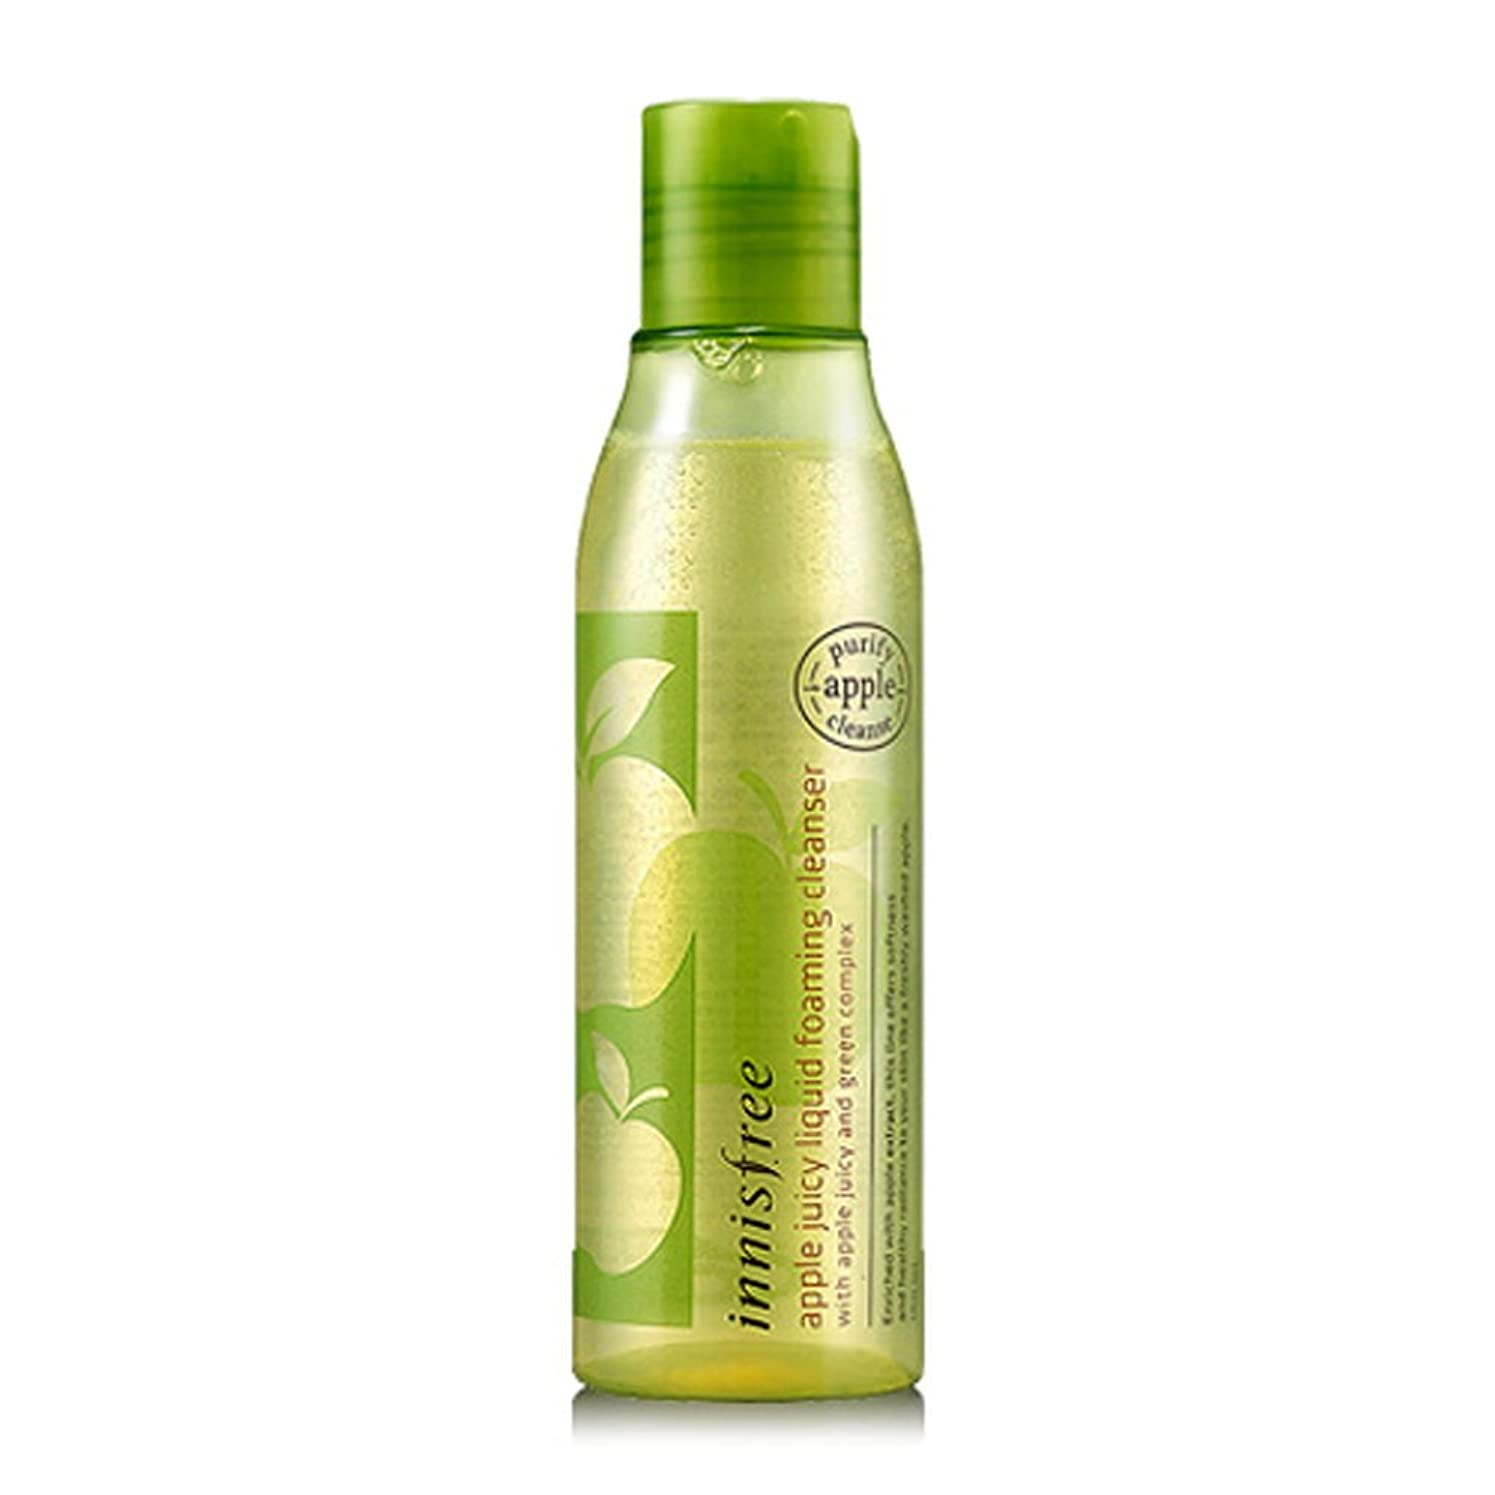 過度の戸口大砲[イニスフリー Innsfree] Apple Juicy Liquid Foaming Cleanser 150ml